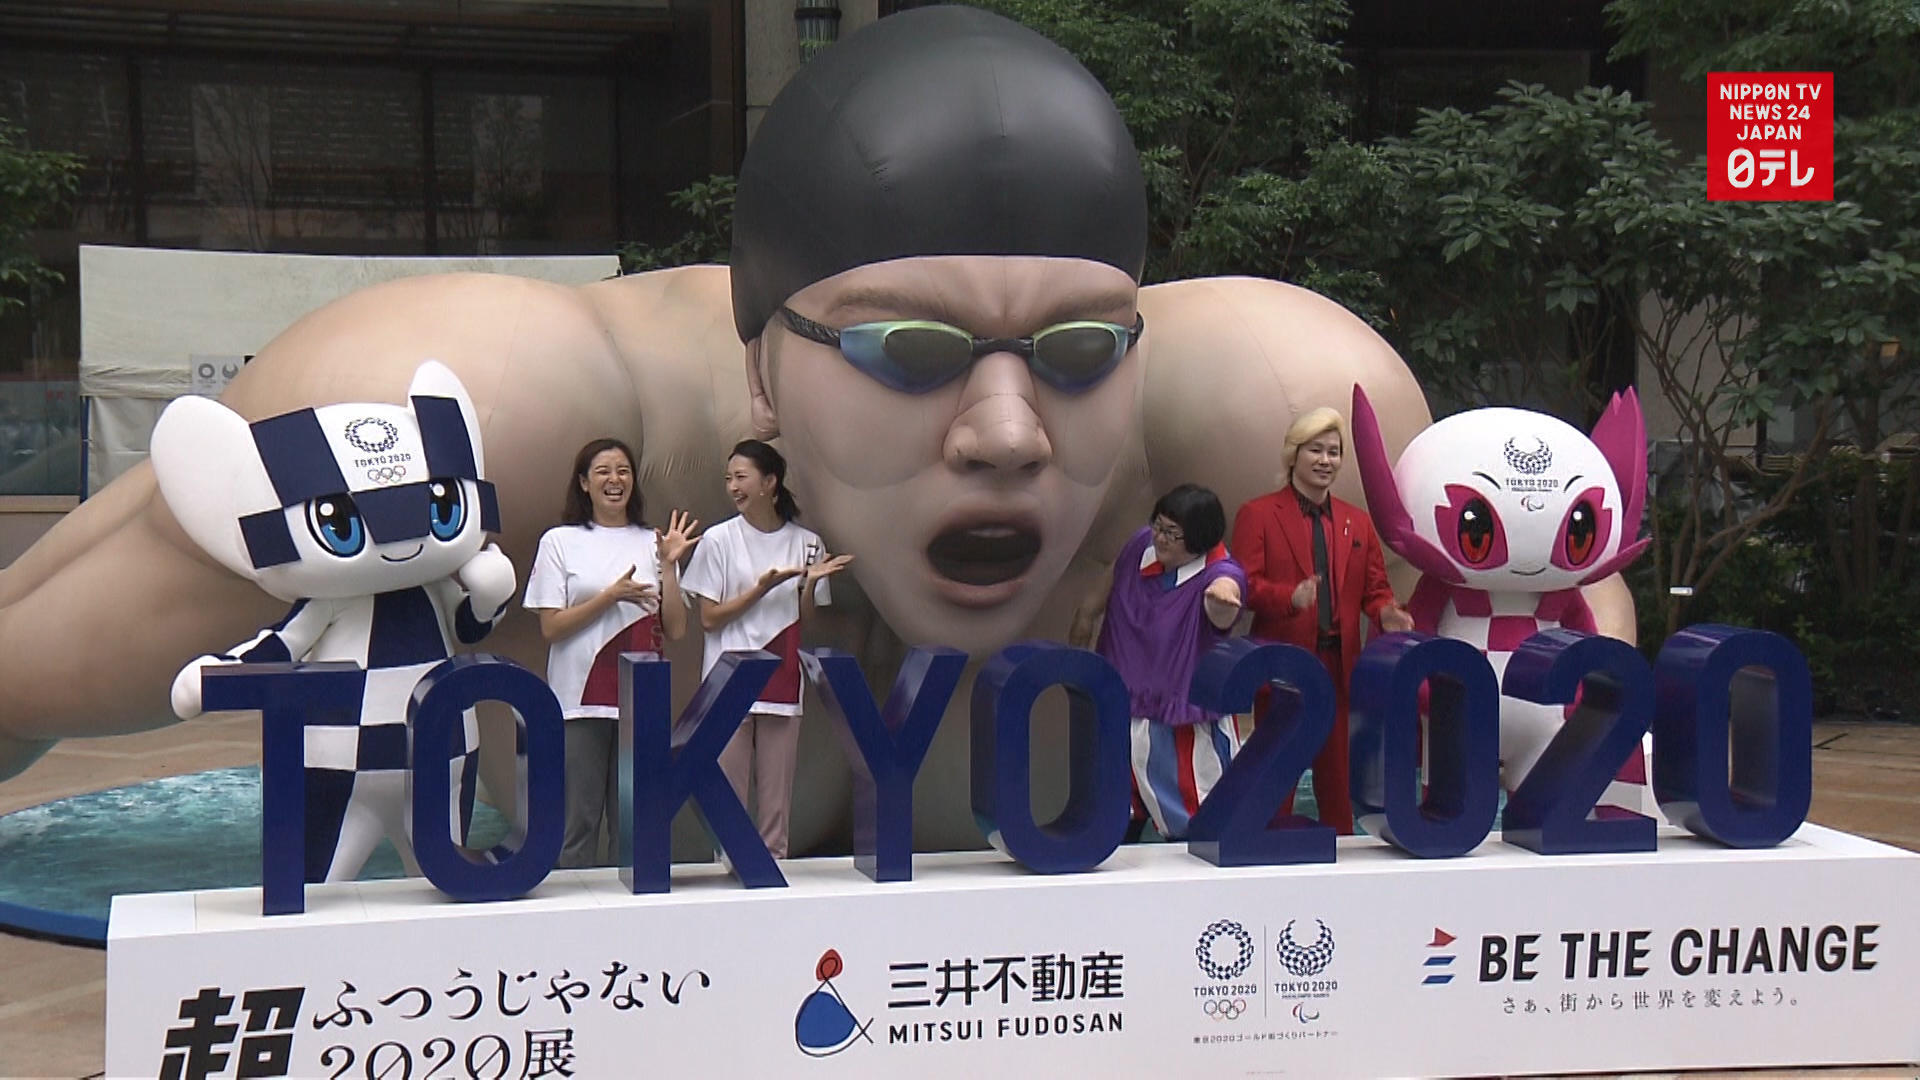 Tokyo decked out for Olympics